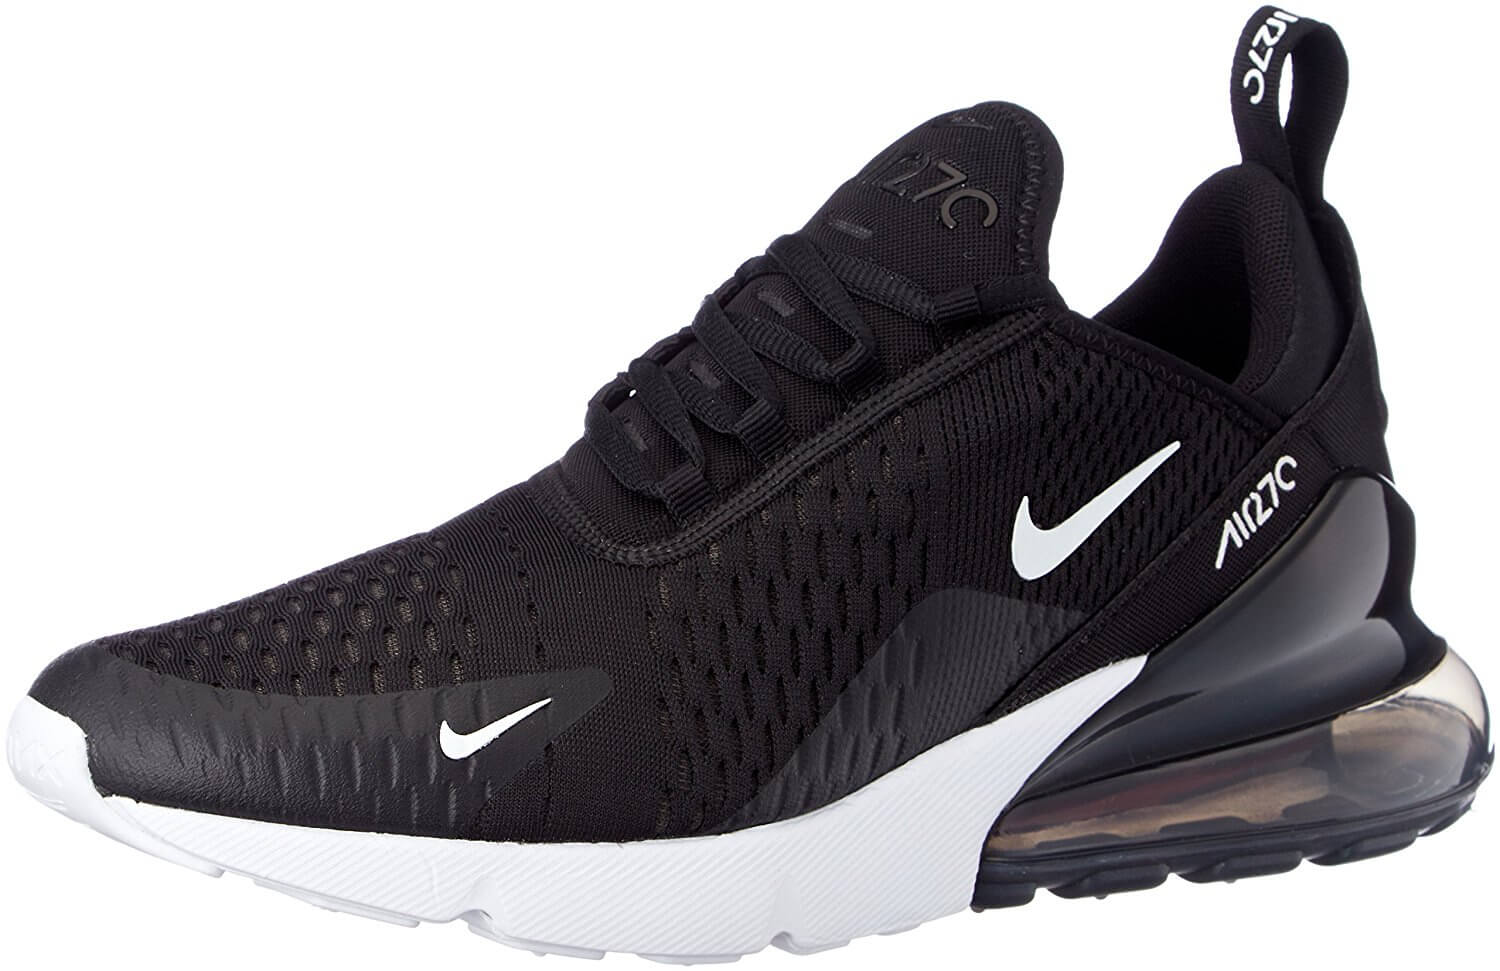 c10aa90cbbb9 Nike Air Max 270 Reviewed - To Buy or Not in May 2019